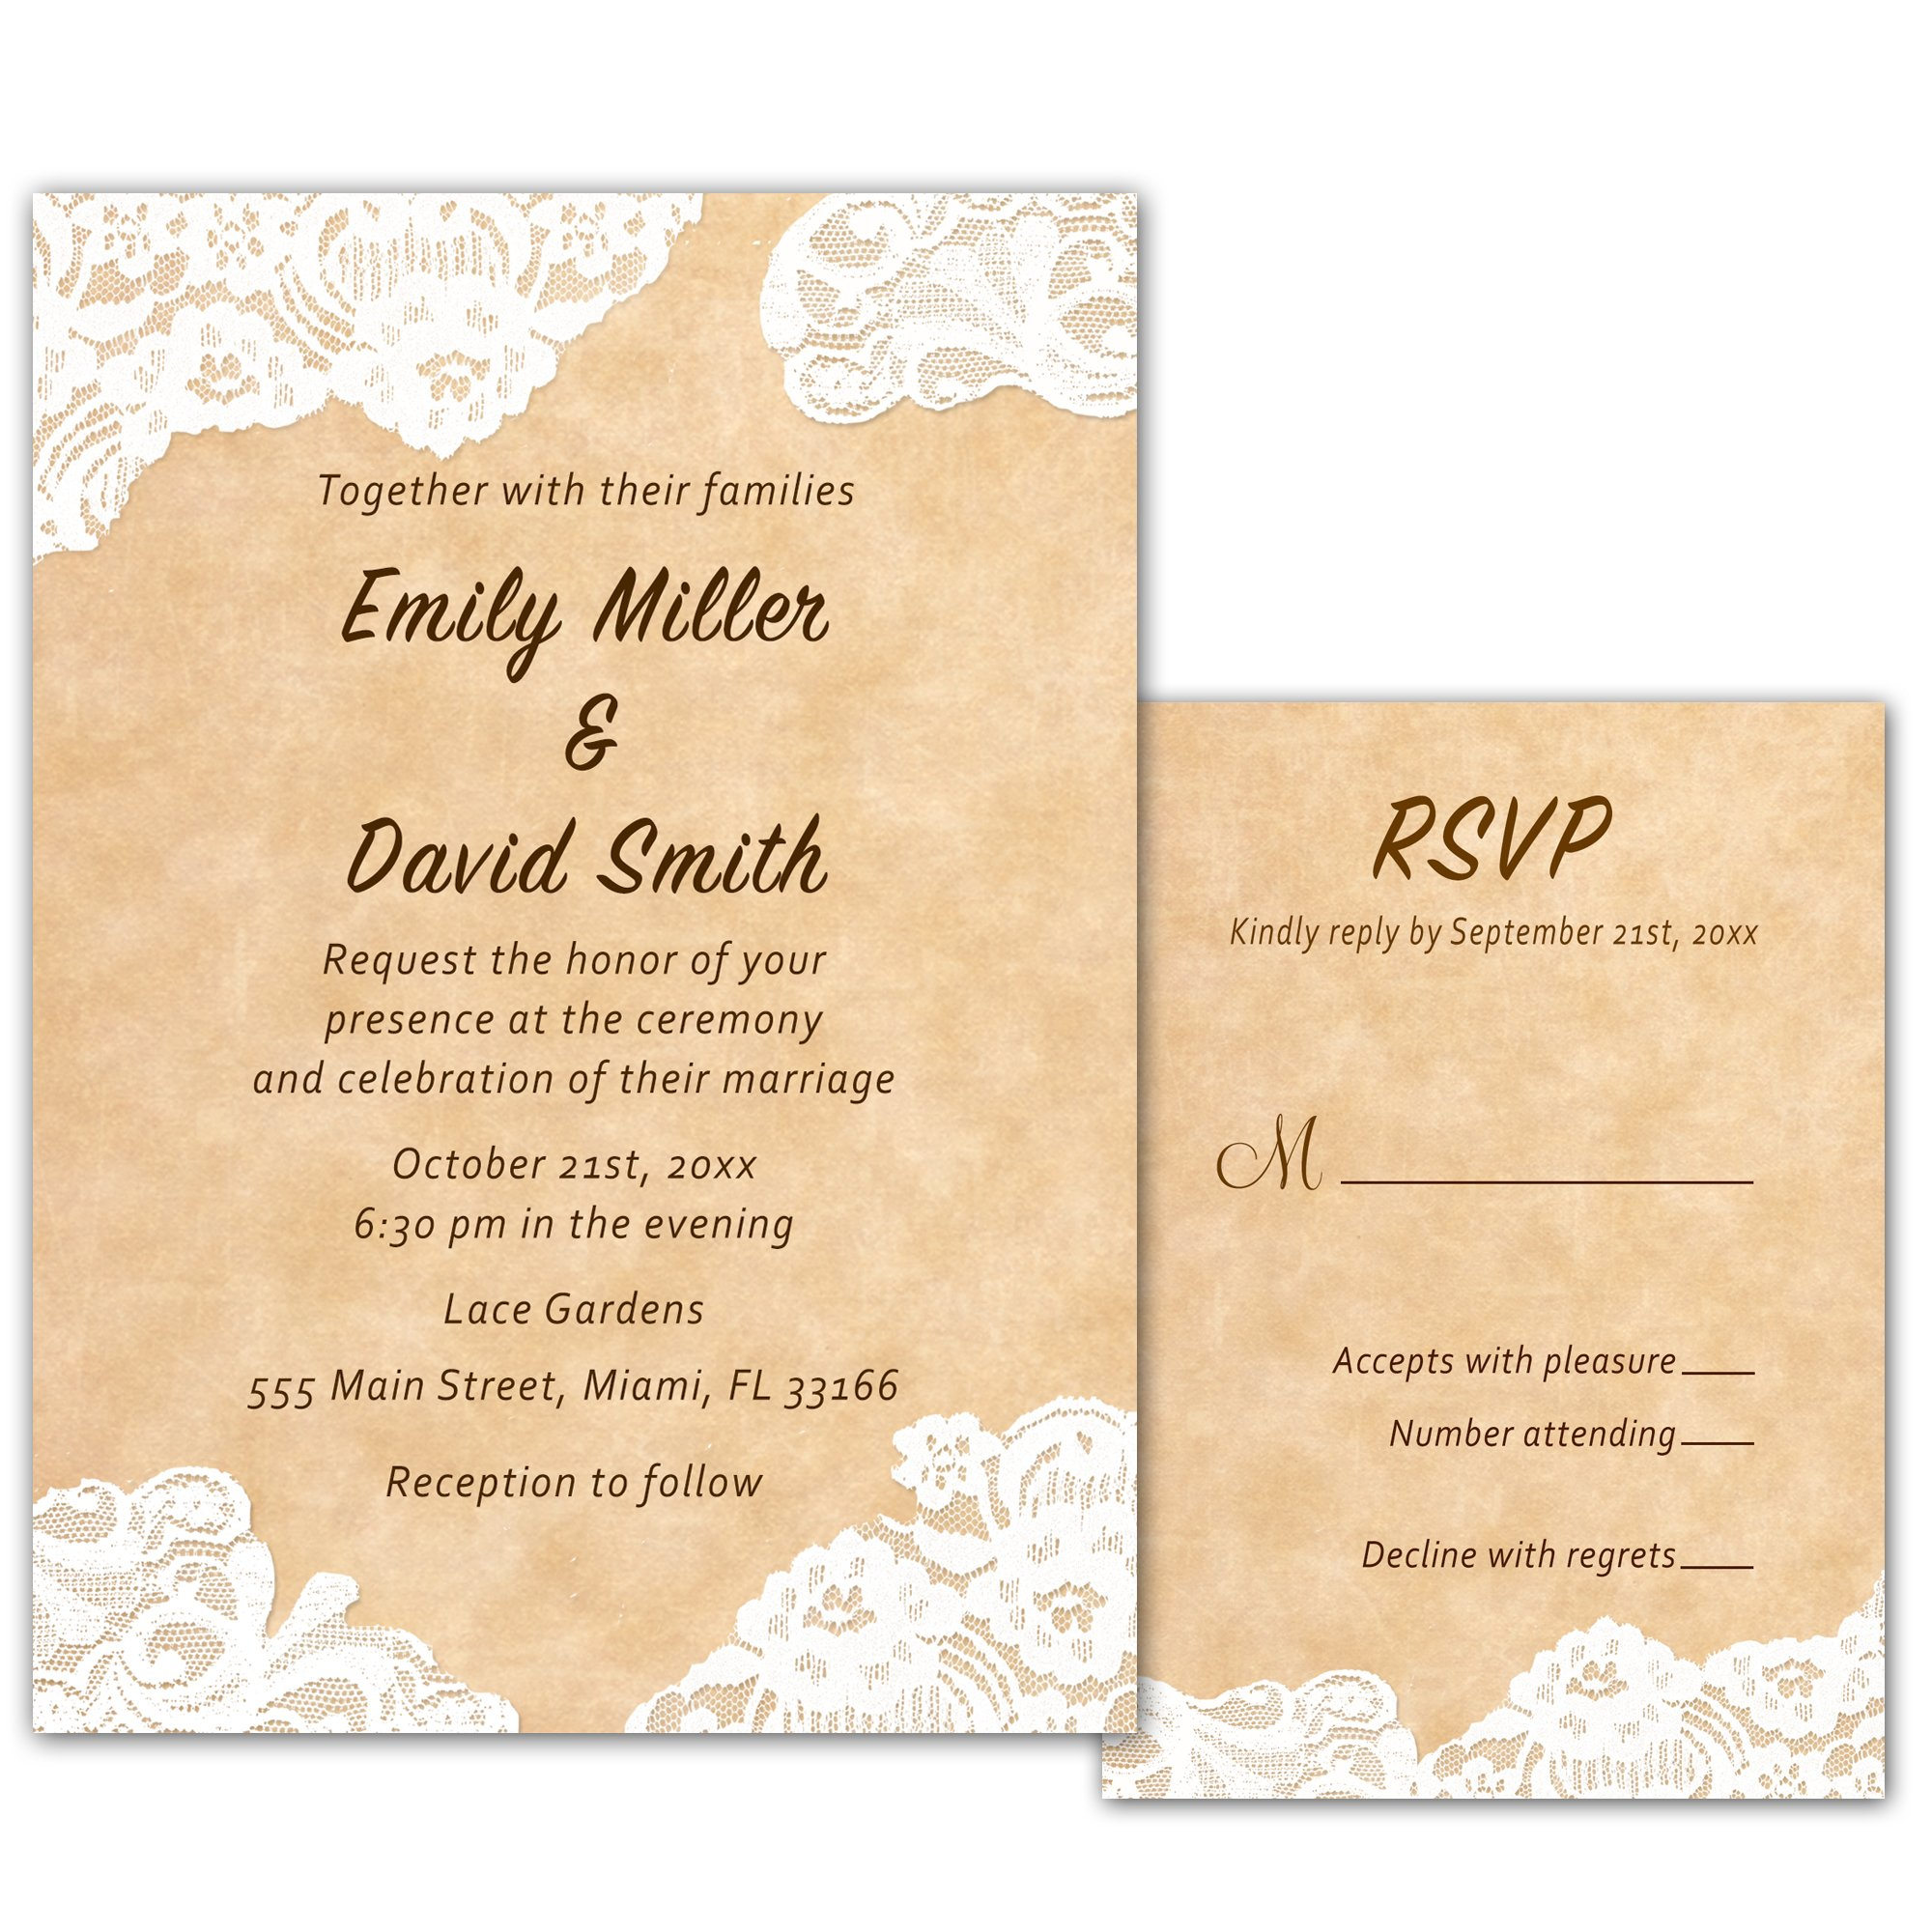 100 Wedding Invitations Rustic Country Style Lace Design + Envelopes + Response Cards Set